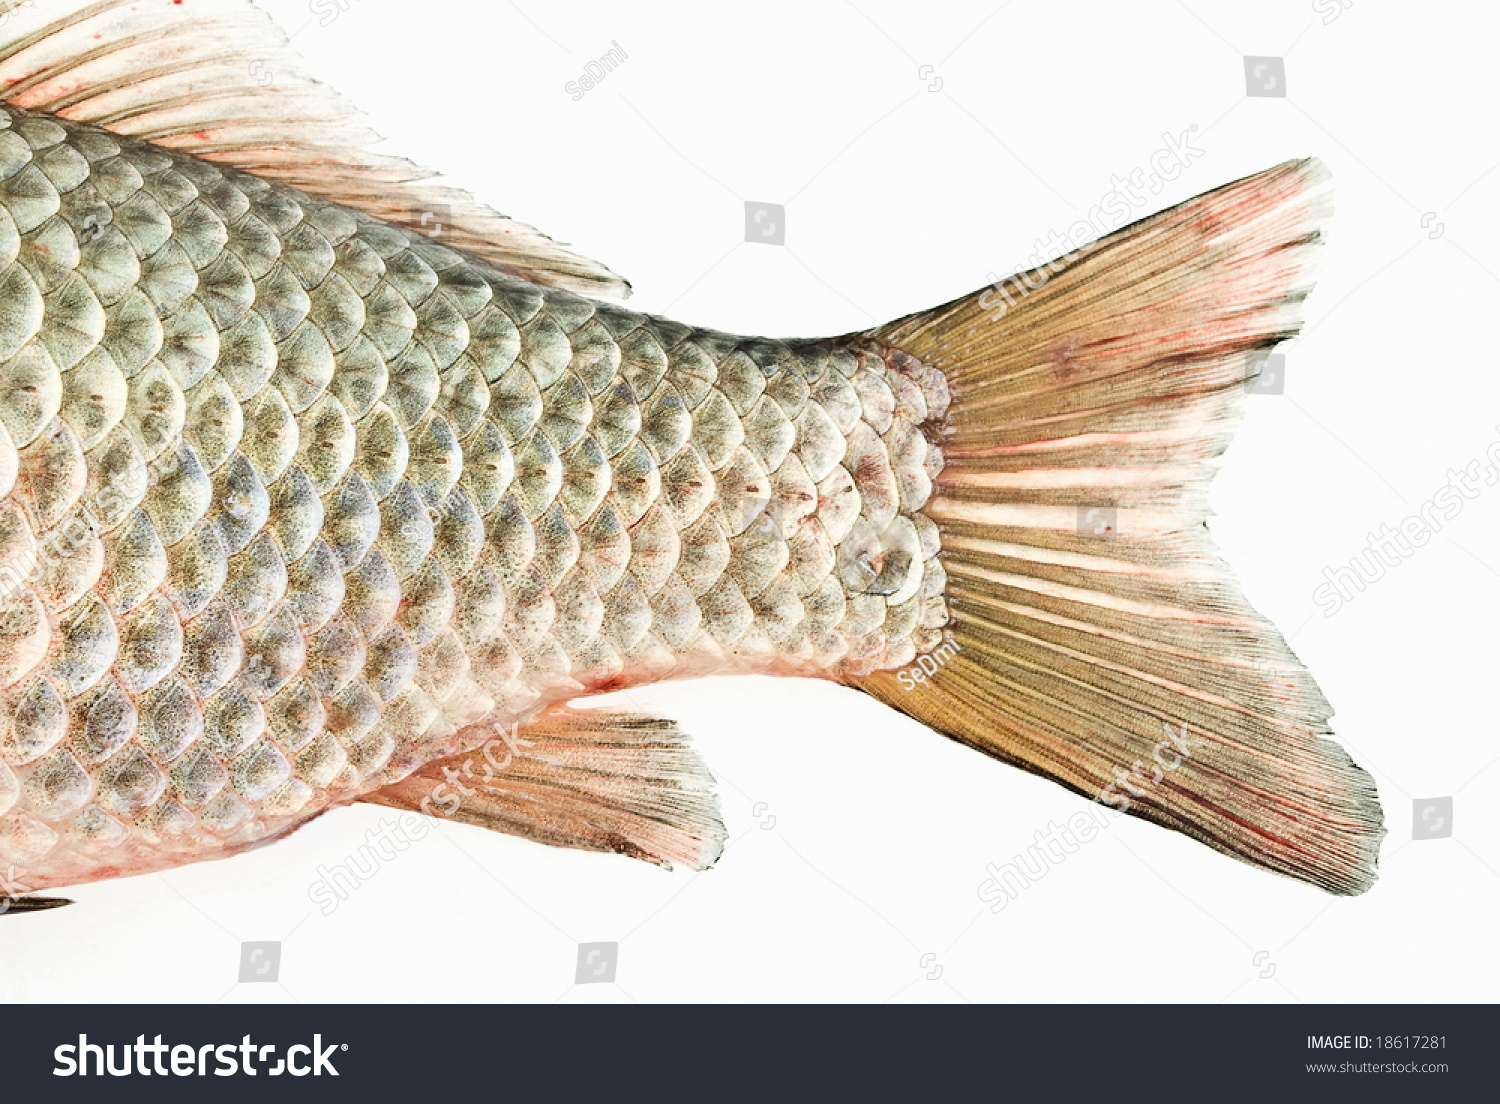 Fish tail stock photo 18617281 shutterstock for Fish and tails